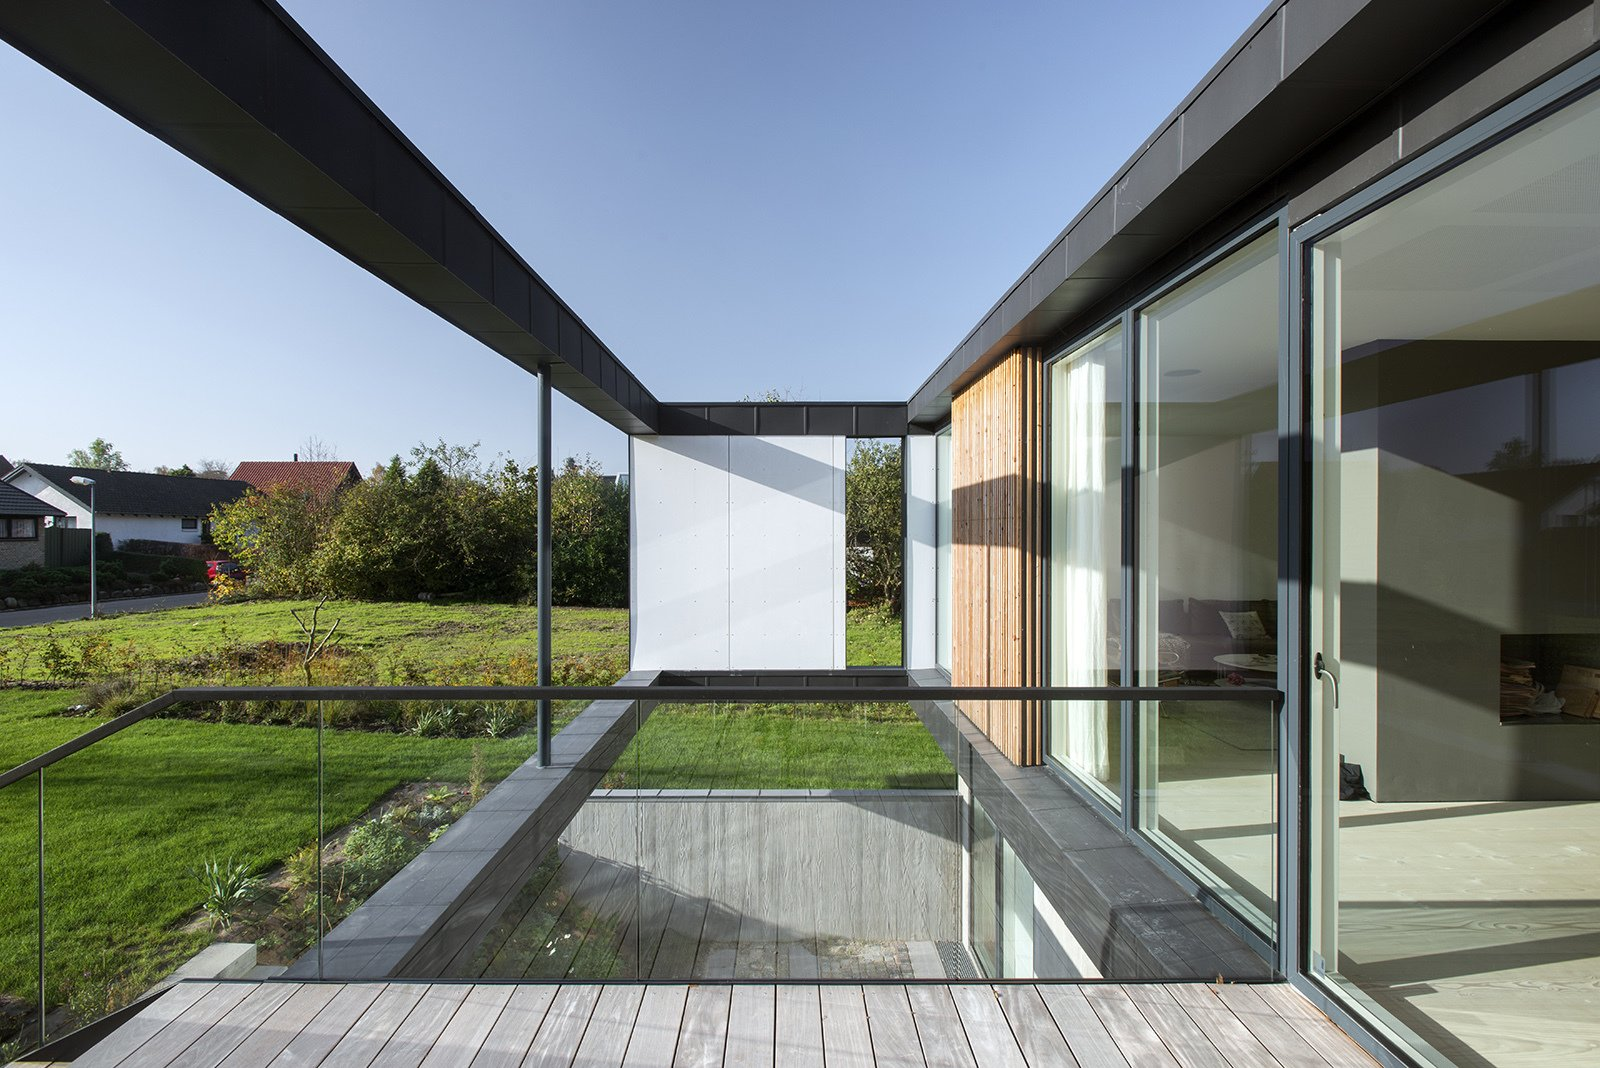 """Outdoor, Side Yard, Metal, Wood, Small, Shrubs, Decking, Grass, and Hanging Located in Aarhus, Denmark, Villa R is a minimalist, serene structure clad in zinc panels. """"The objective was to create a house that brings the forest inside through large glass panels—and create an ever-changing seasonal backdrop for the interior living spaces,"""" stated the architecture firm, C.F. Møller, of the 3,200-square-foot abode.  Outdoor Metal Side Yard Shrubs Photos from Villa R"""